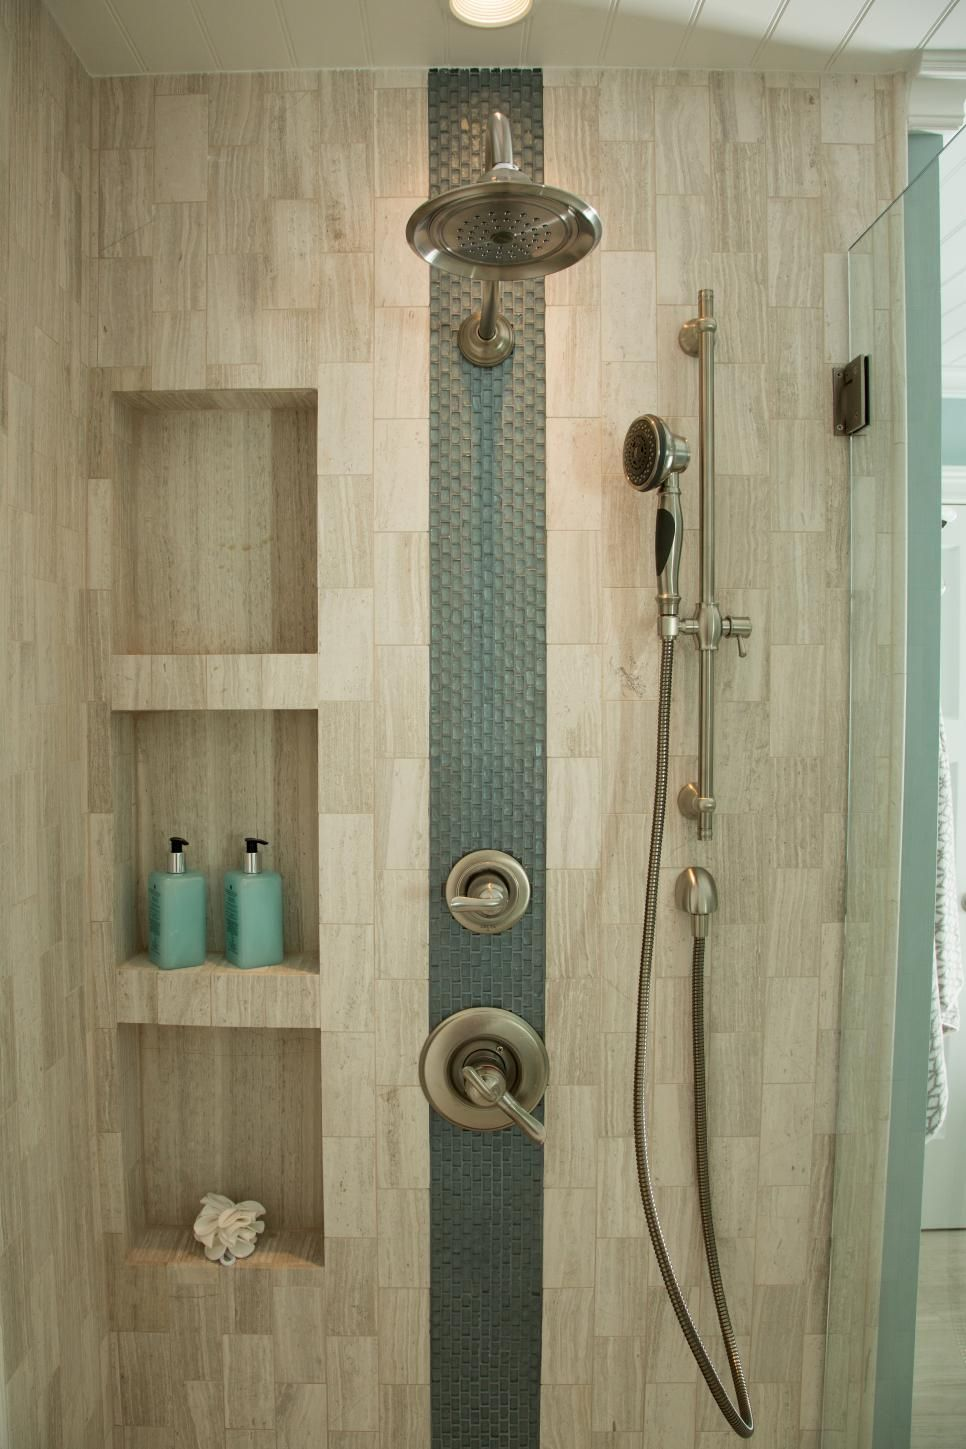 An Accent Stripe Of Glass Tiles Adds Interest To This Neutral Shower. Sleek  Niches Provide